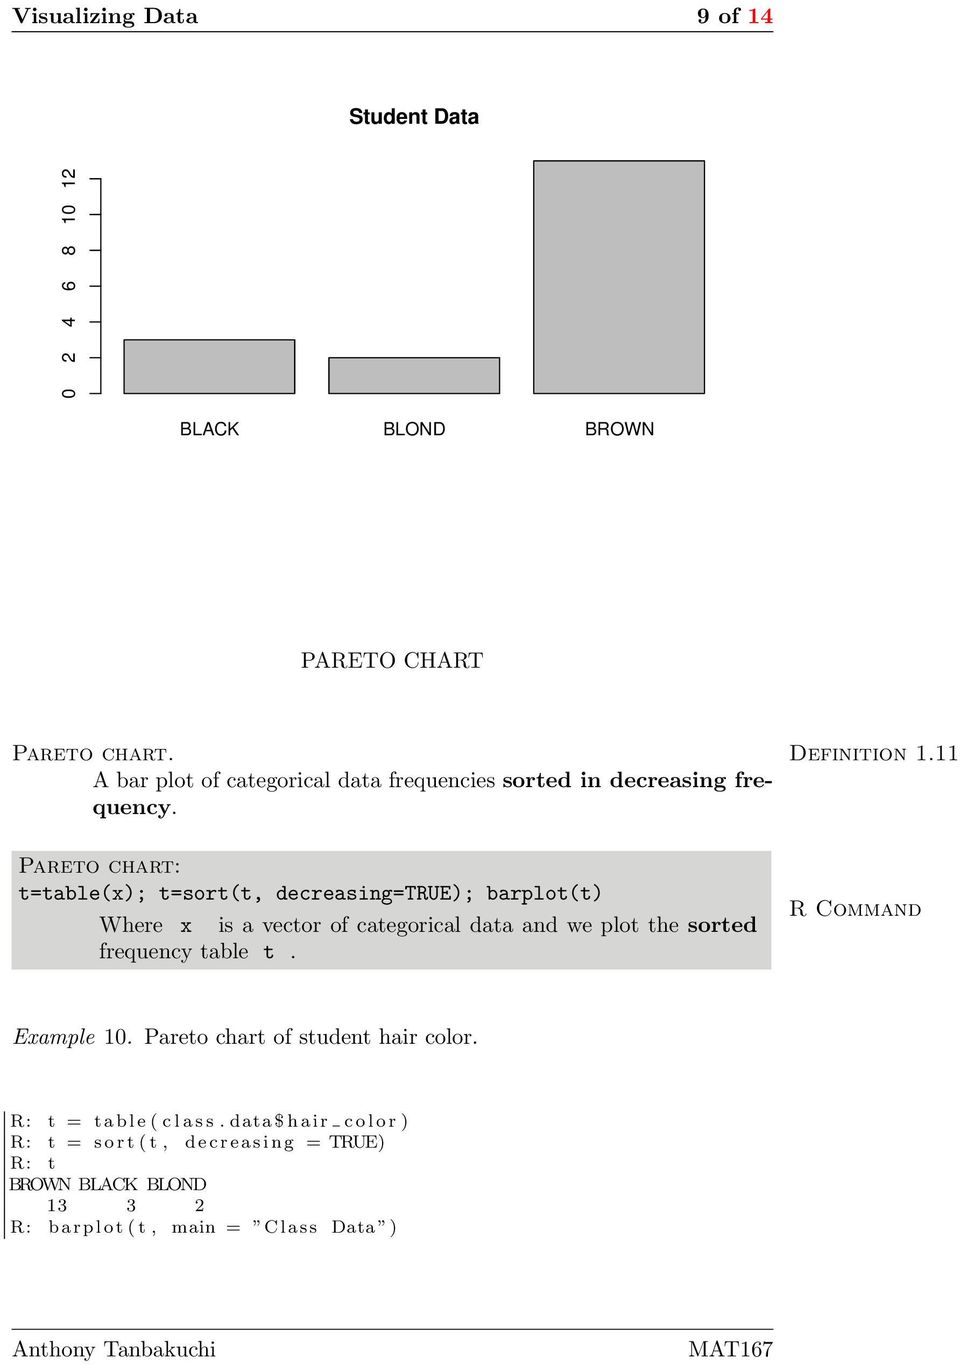 Pareto chart: t=table(x); t=sort(t, decreasing=true); barplot(t) Where x is a vector of categorical data and we plot the sorted frequency